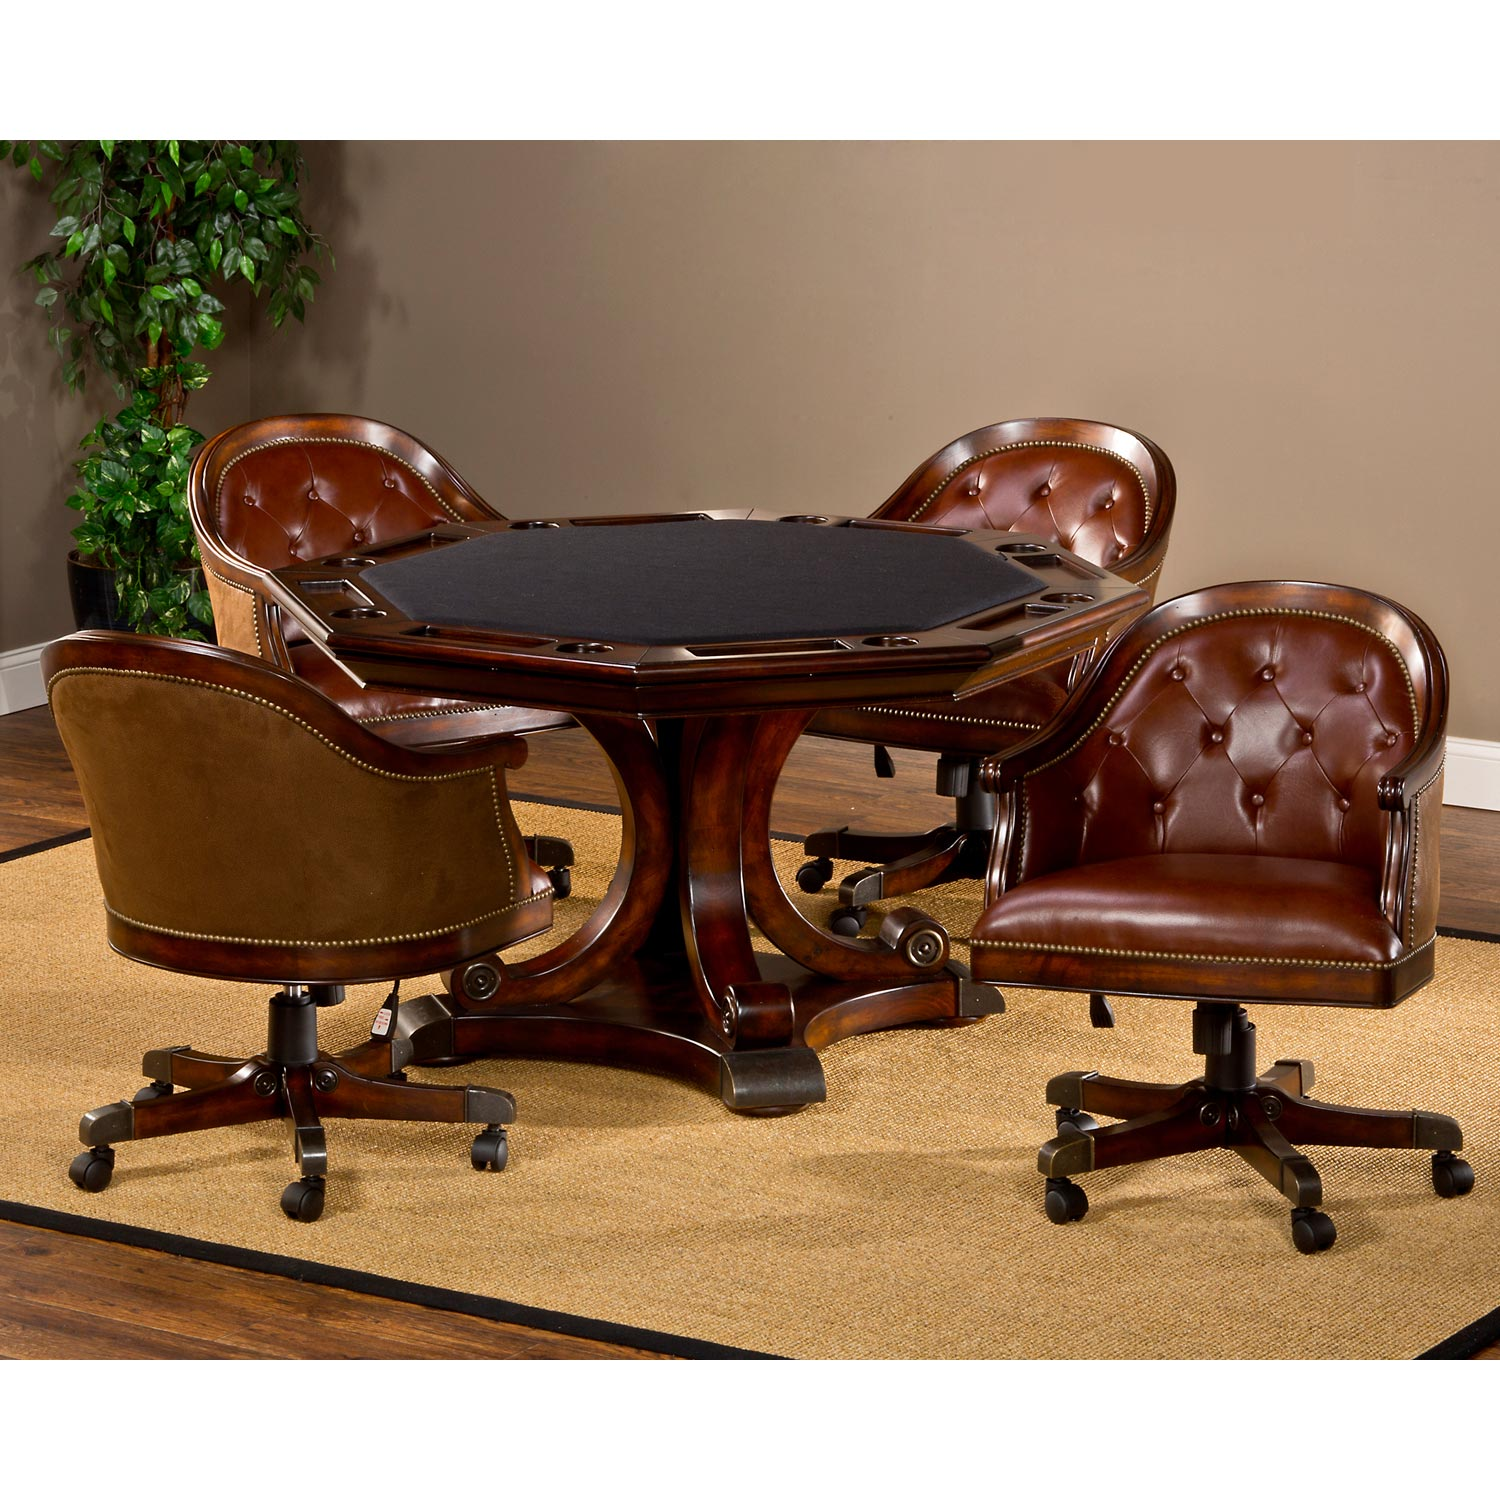 Game Room Furniture DCG Stores